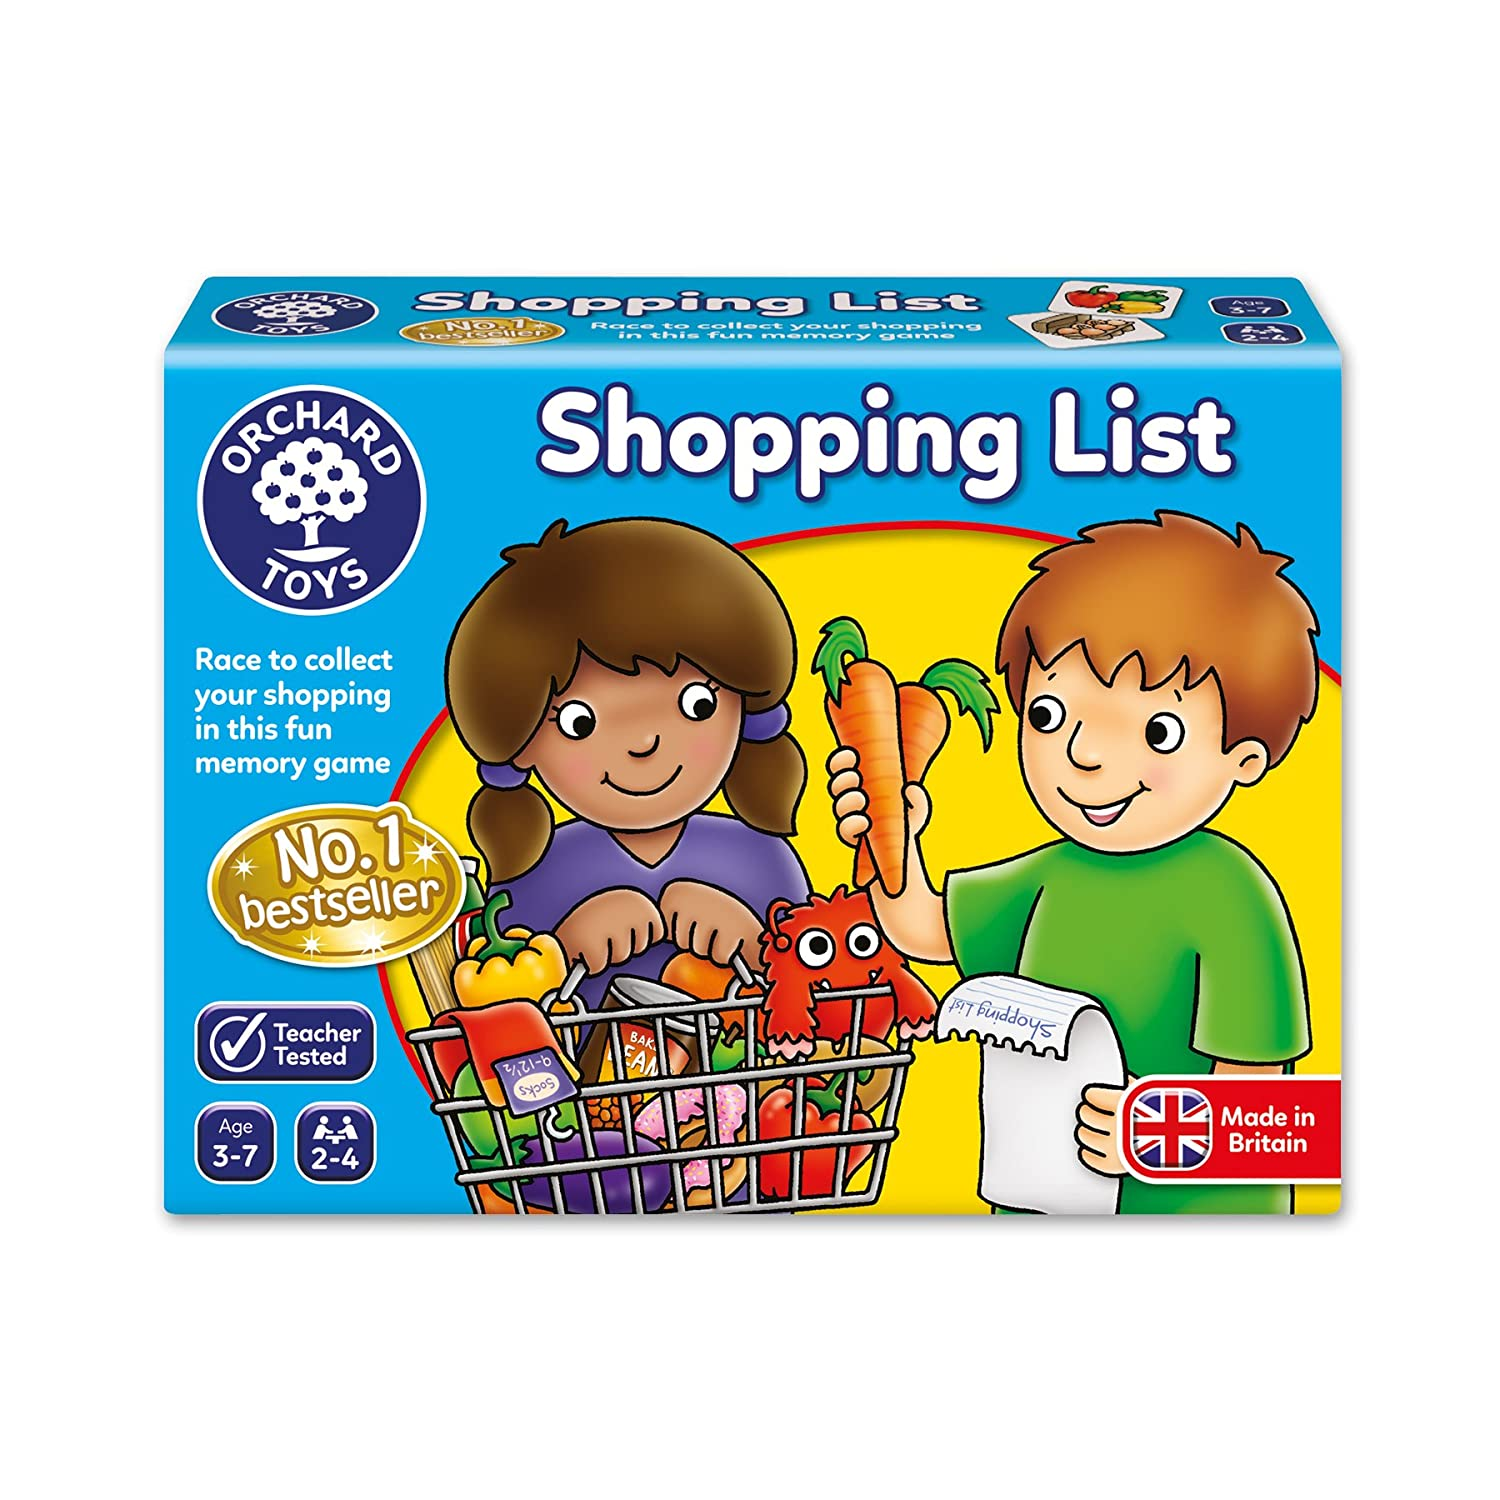 Orchard Toys Shopping List Review, Favorite Family Board Games at HomeschoolGameschool.com